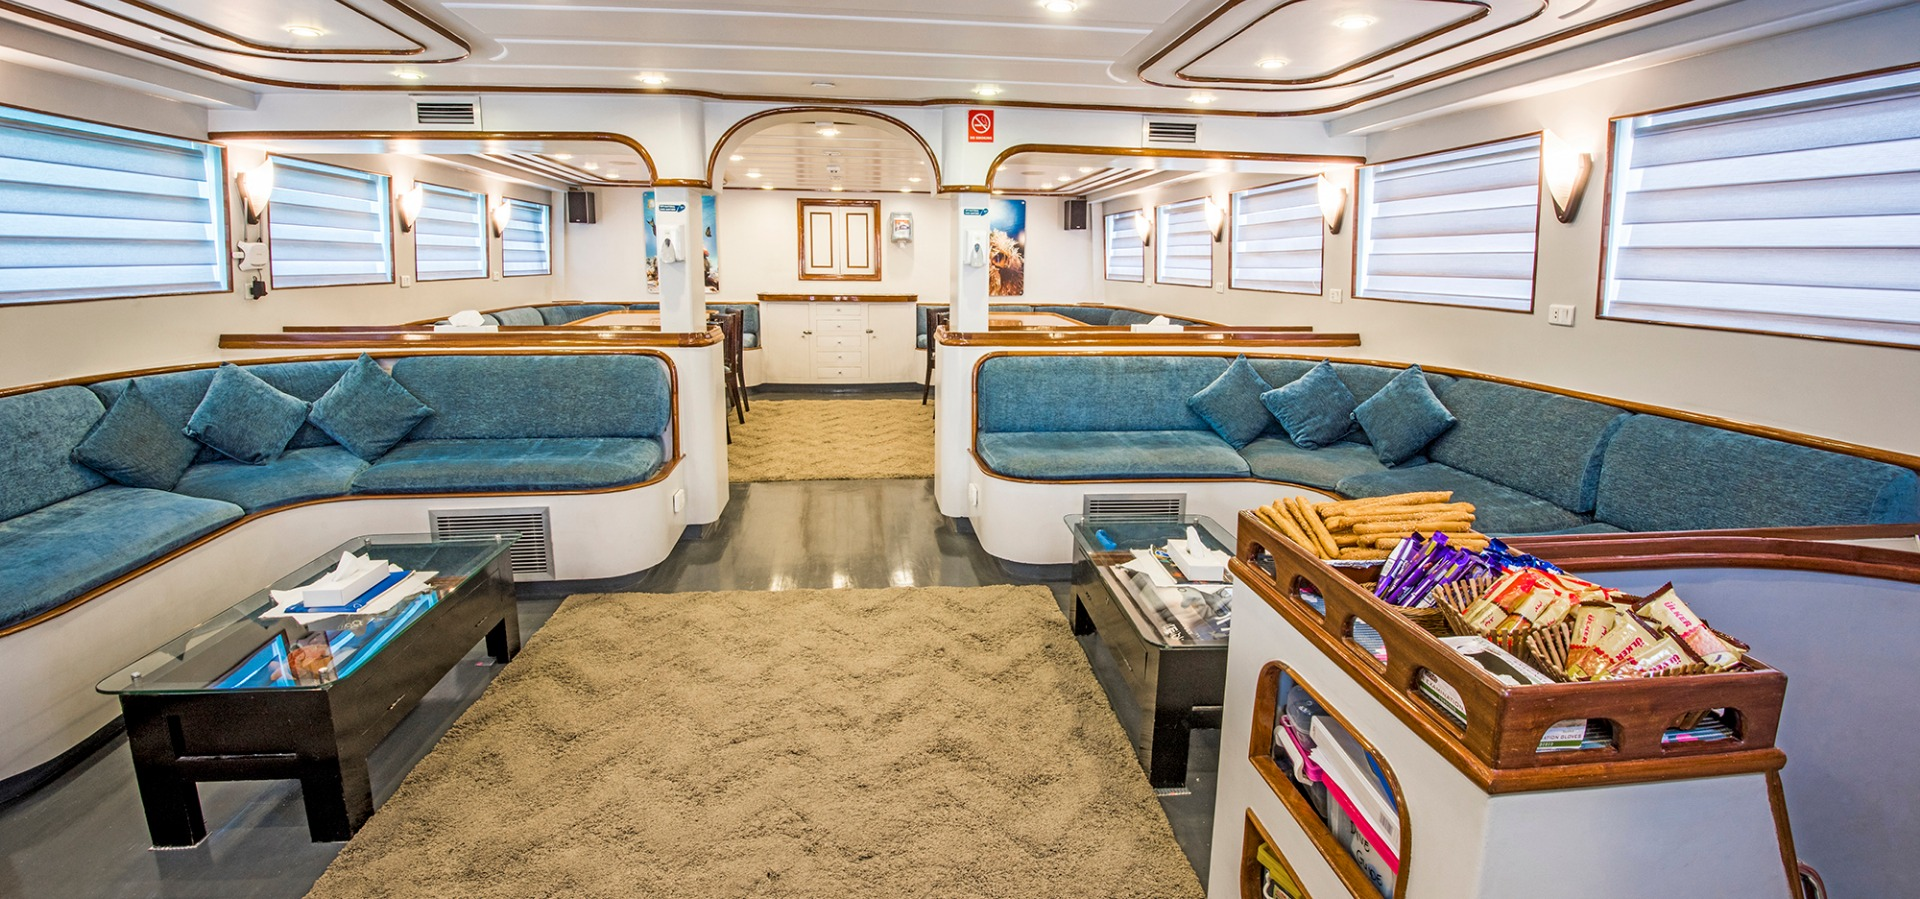 M/Y Red Sea Adventurer saloon and lounge area